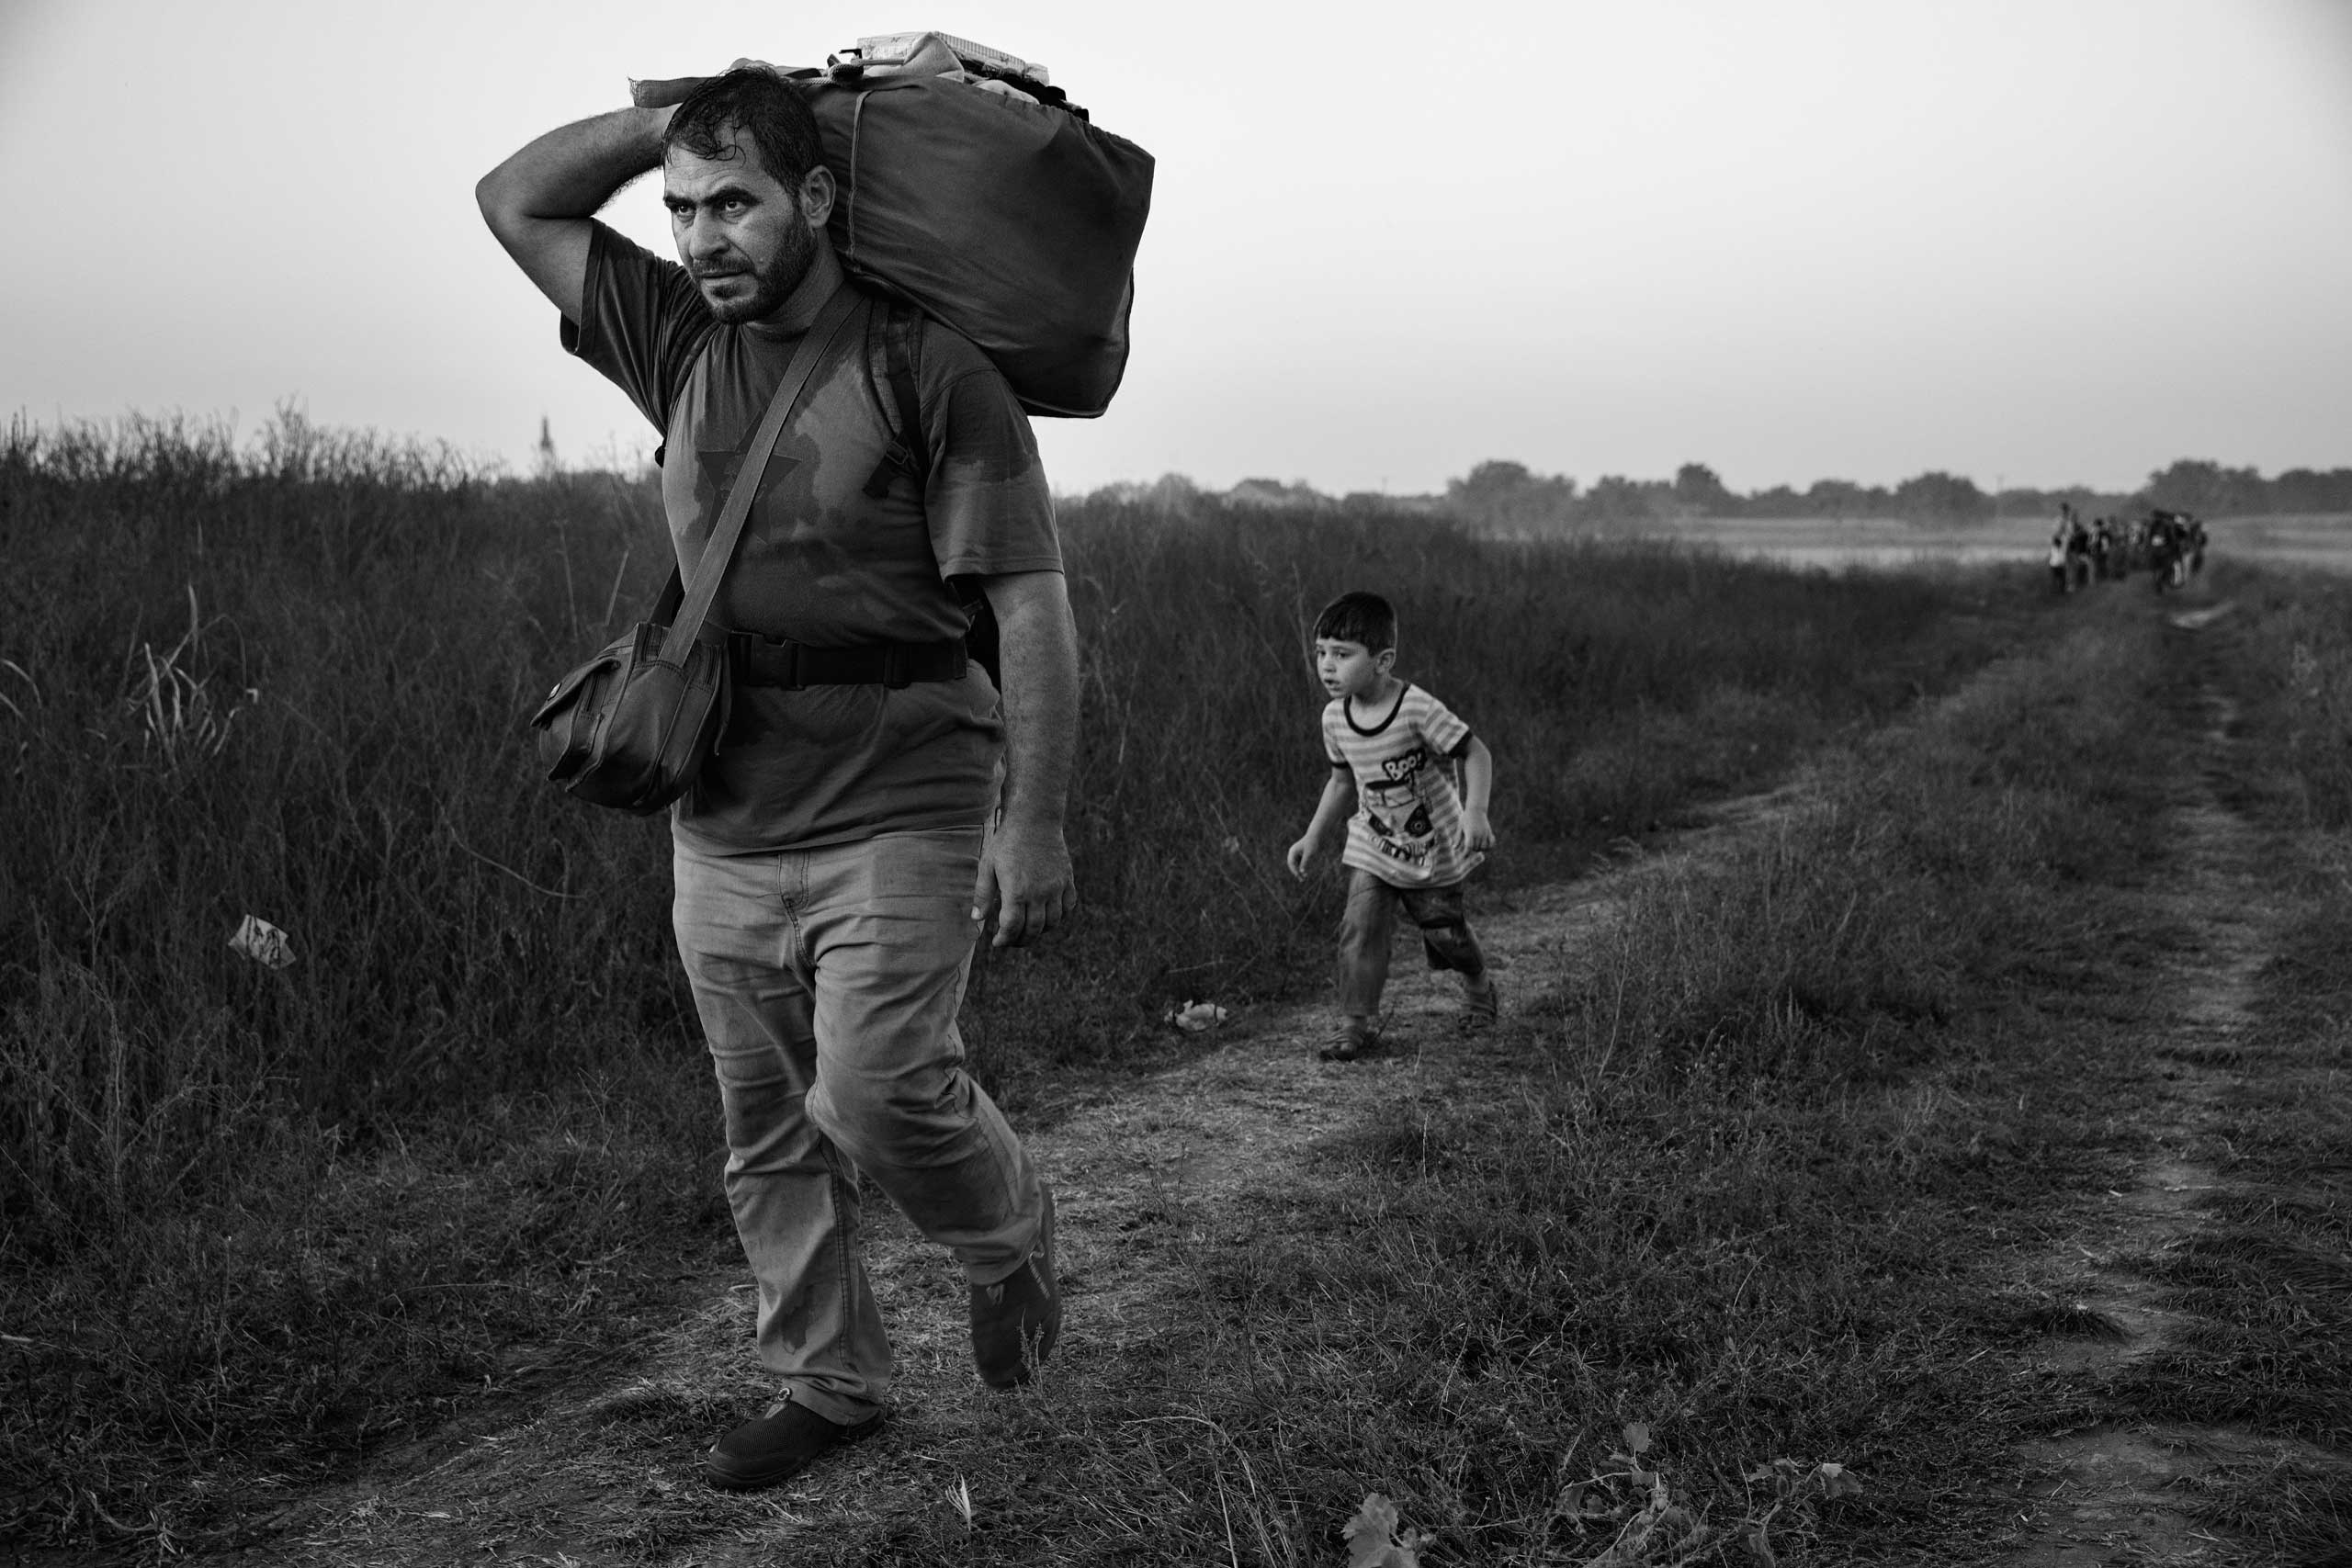 A man walks with his son behind him as they make their way to the train station in Tovarnik, Croatia, on the border with Serbia. In the Balkans, many migrants traveled by foot, echoing more ancient journeys. Sept. 17, 2015.